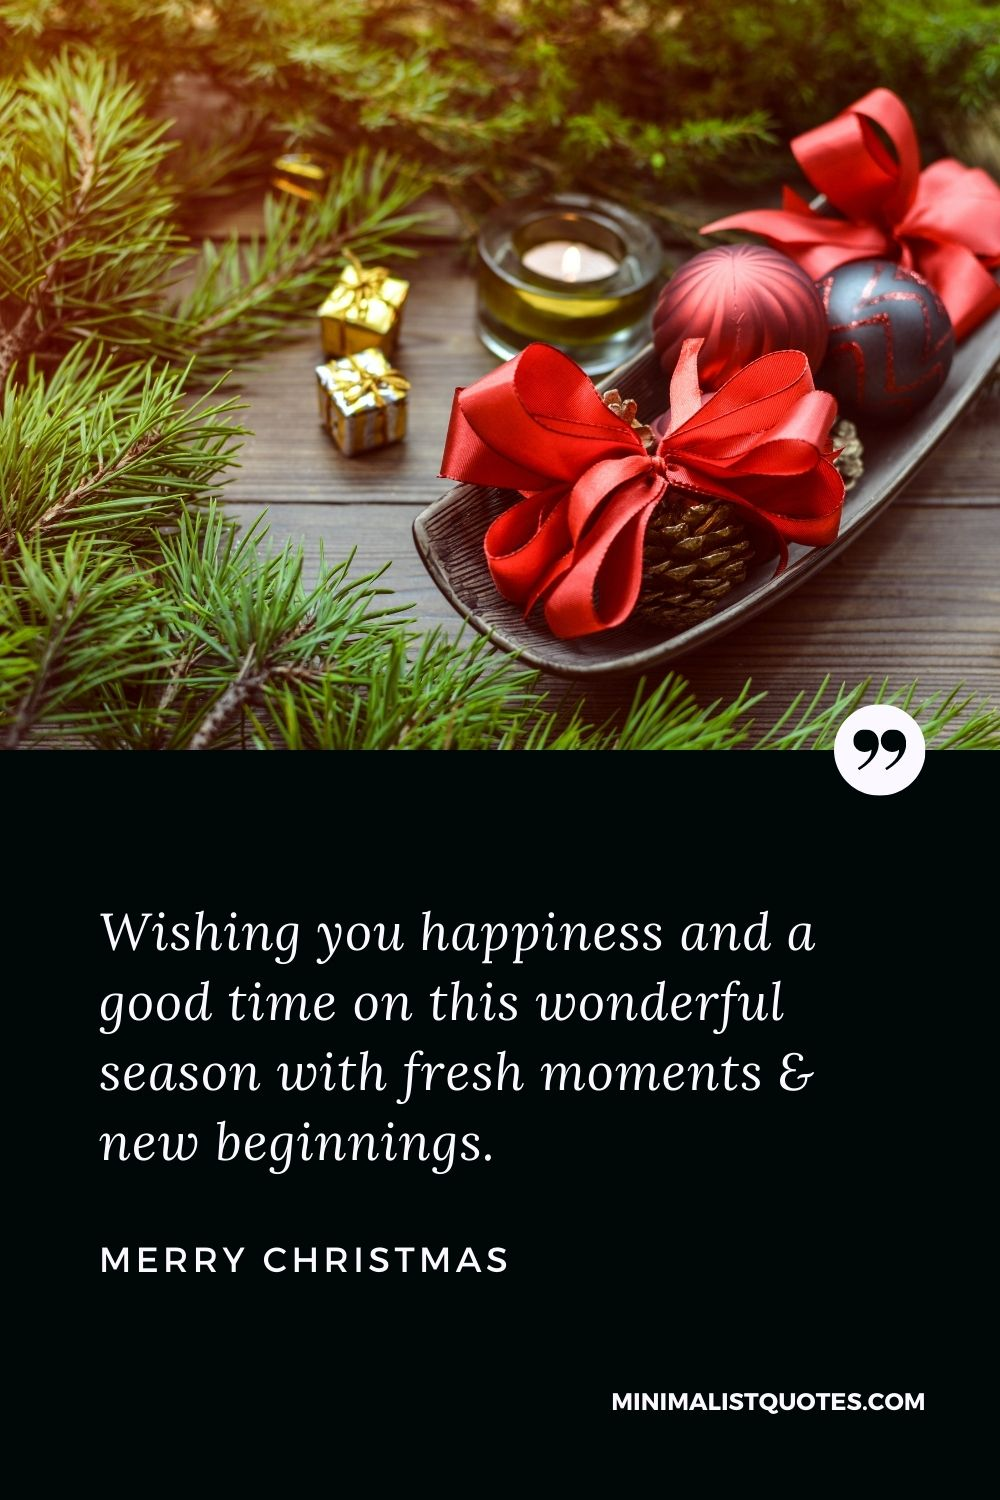 Merry Christmas Wish - Wishing you happiness and a good time on this wonderful season with fresh moments & new beginnings.